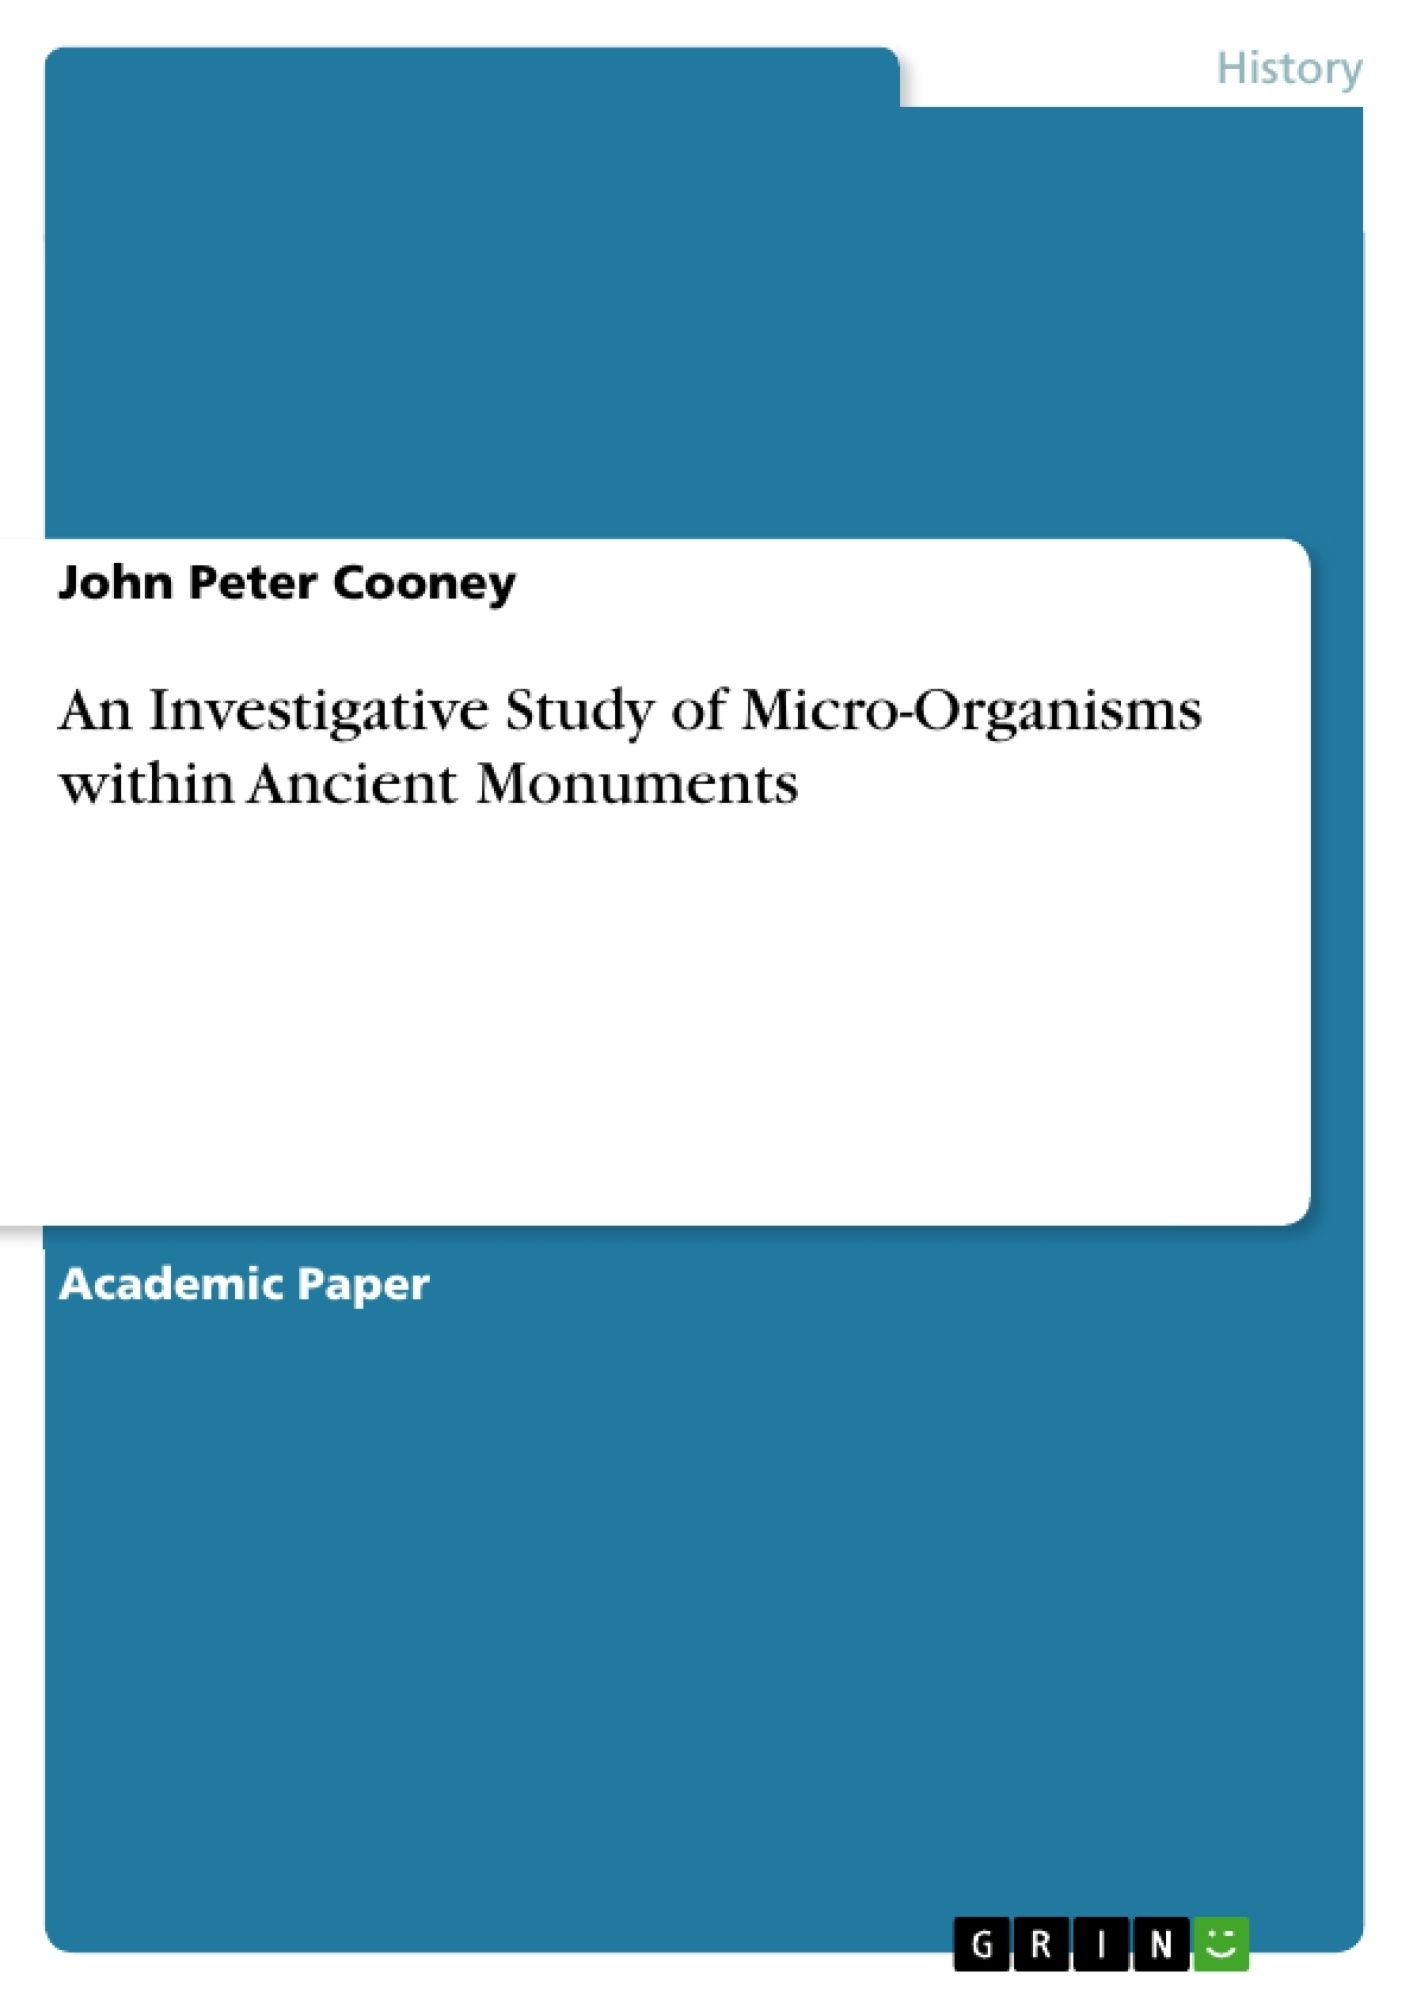 Title: An Investigative Study of Micro-Organisms within Ancient Monuments